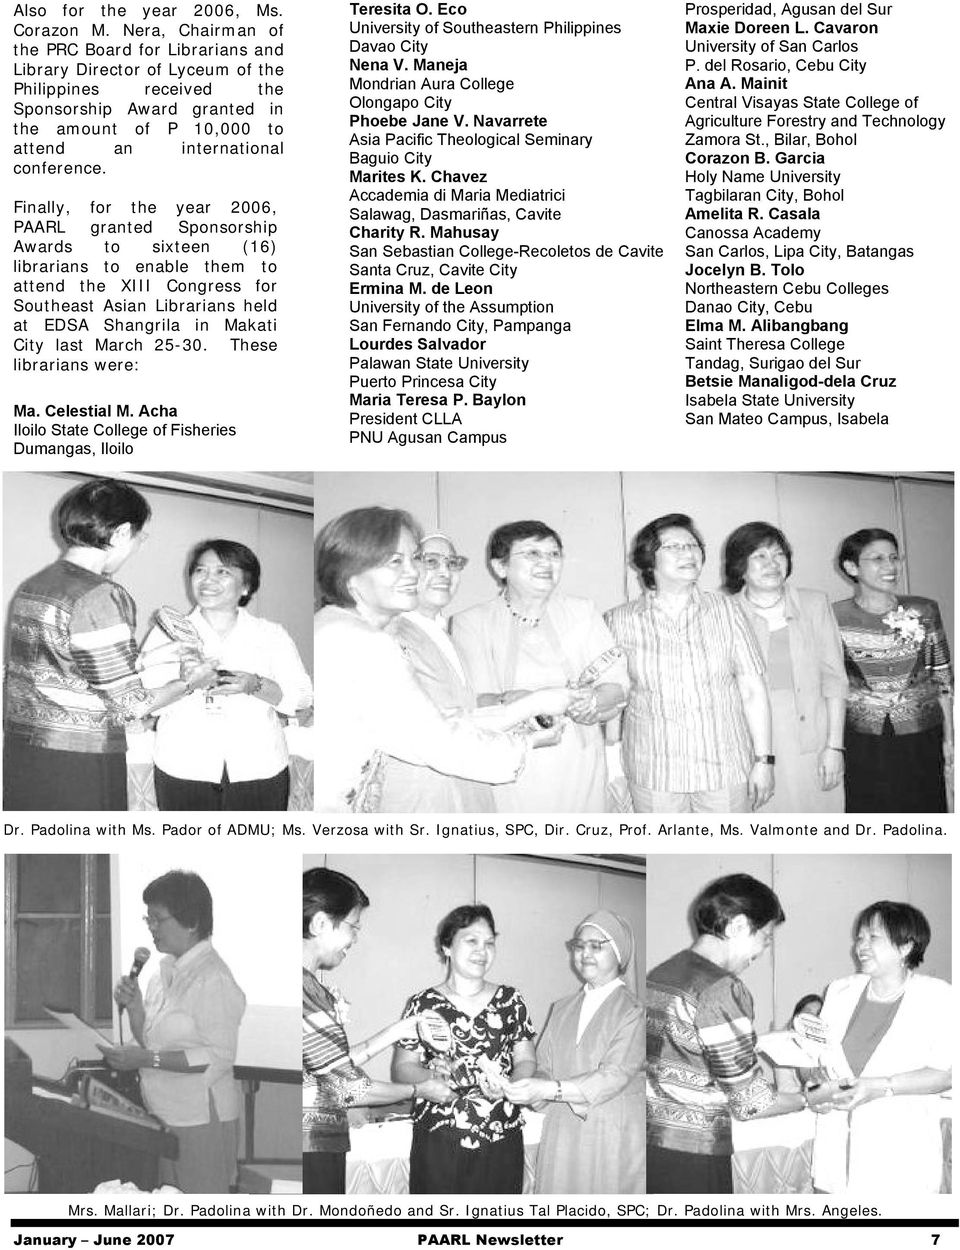 Finally, for the year 2006, PAARL granted Sponsorship Awards to sixteen (16) librarians to enable them to attend the XIII Congress for Southeast Asian Librarians held at EDSA Shangrila in Makati City